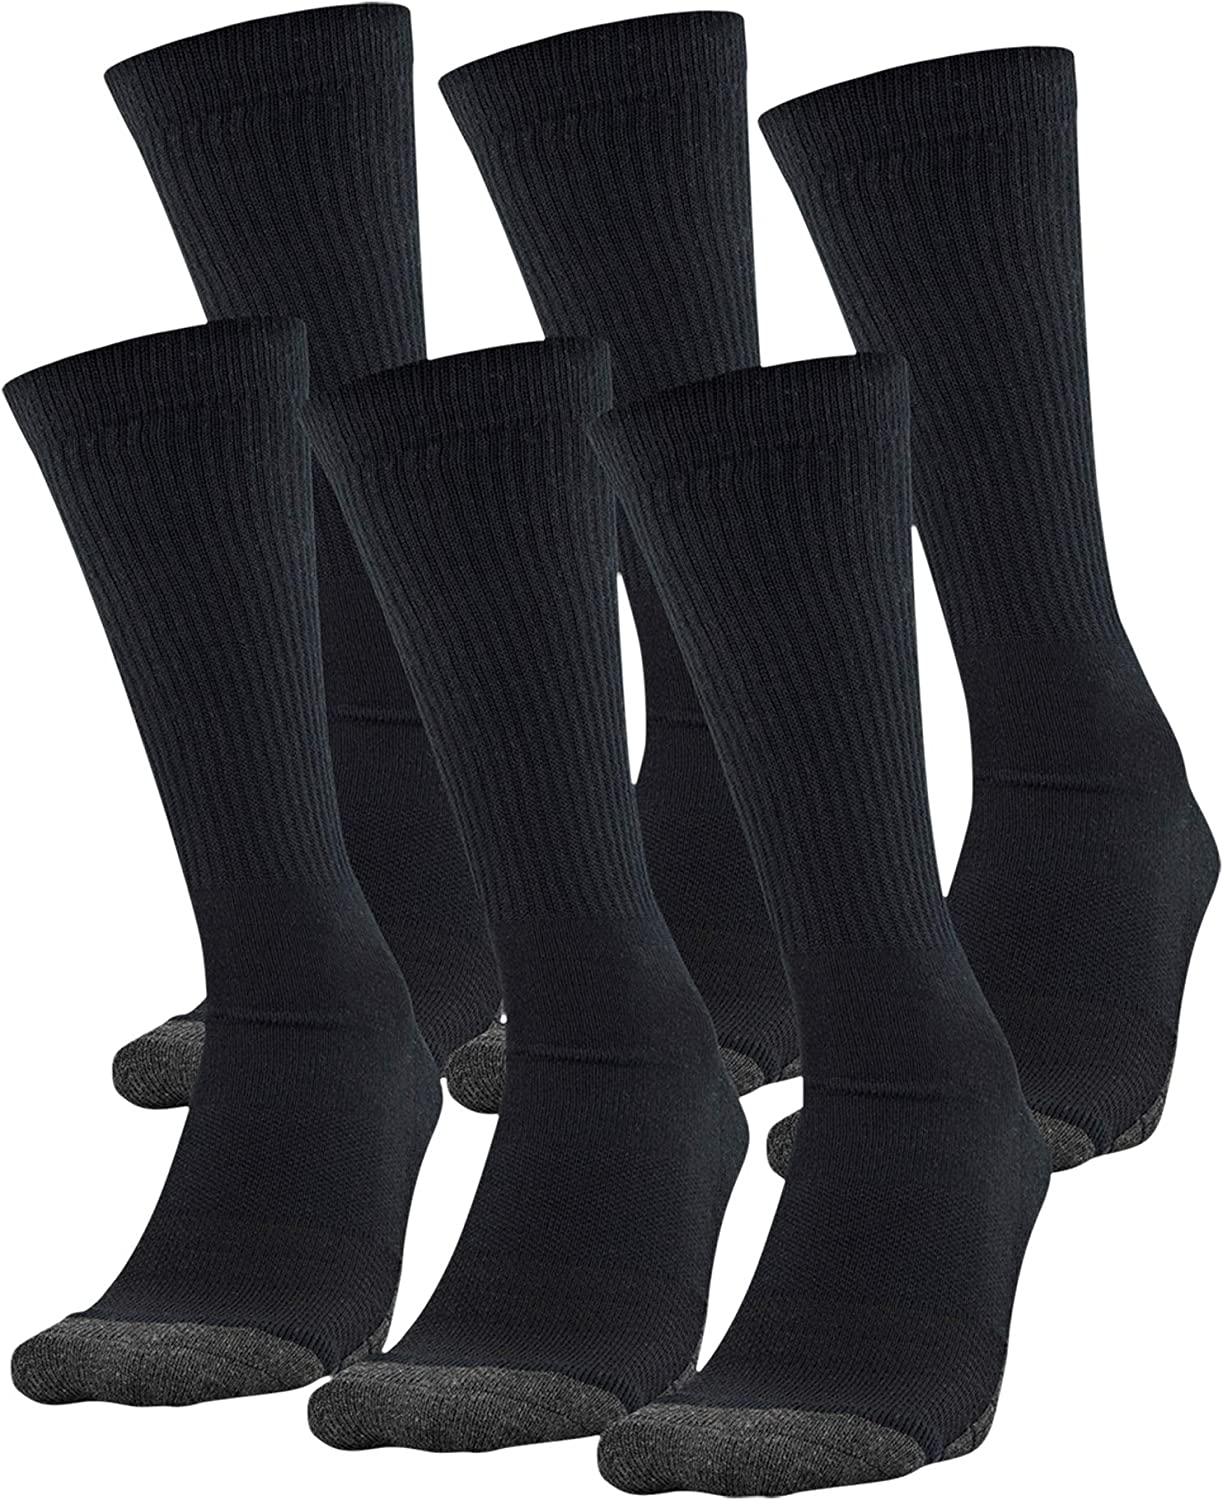 Under Armour Adult Performance Tech Crew Socks (3 and 6 Pack)